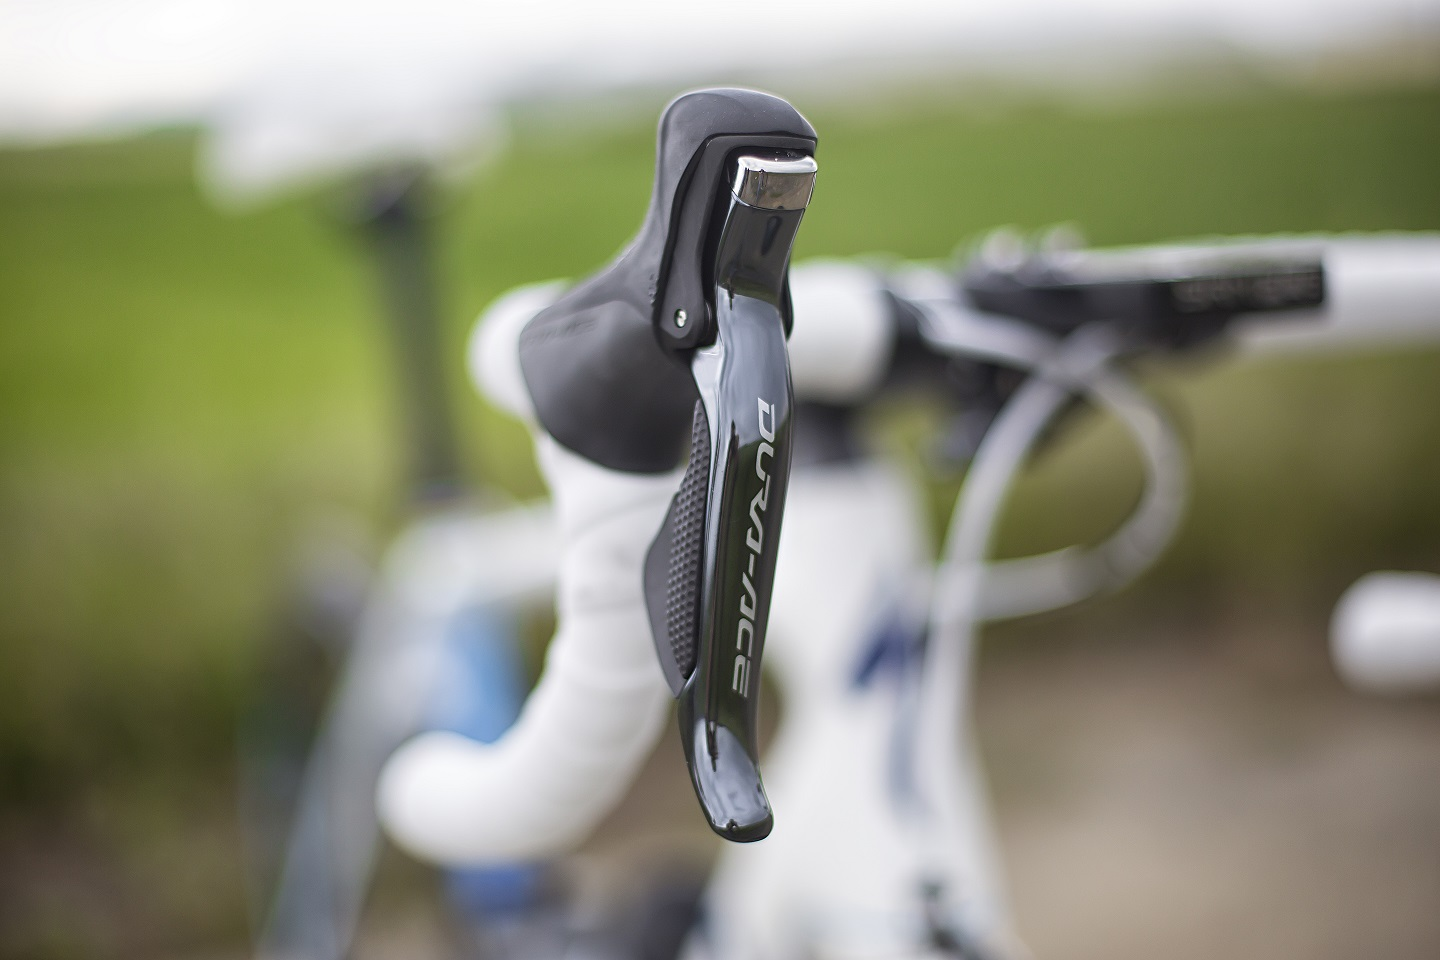 I first switched to Shimano Di2 in 2014 and have not looked back since, I can always rely on the shifting to be crisp and precise.